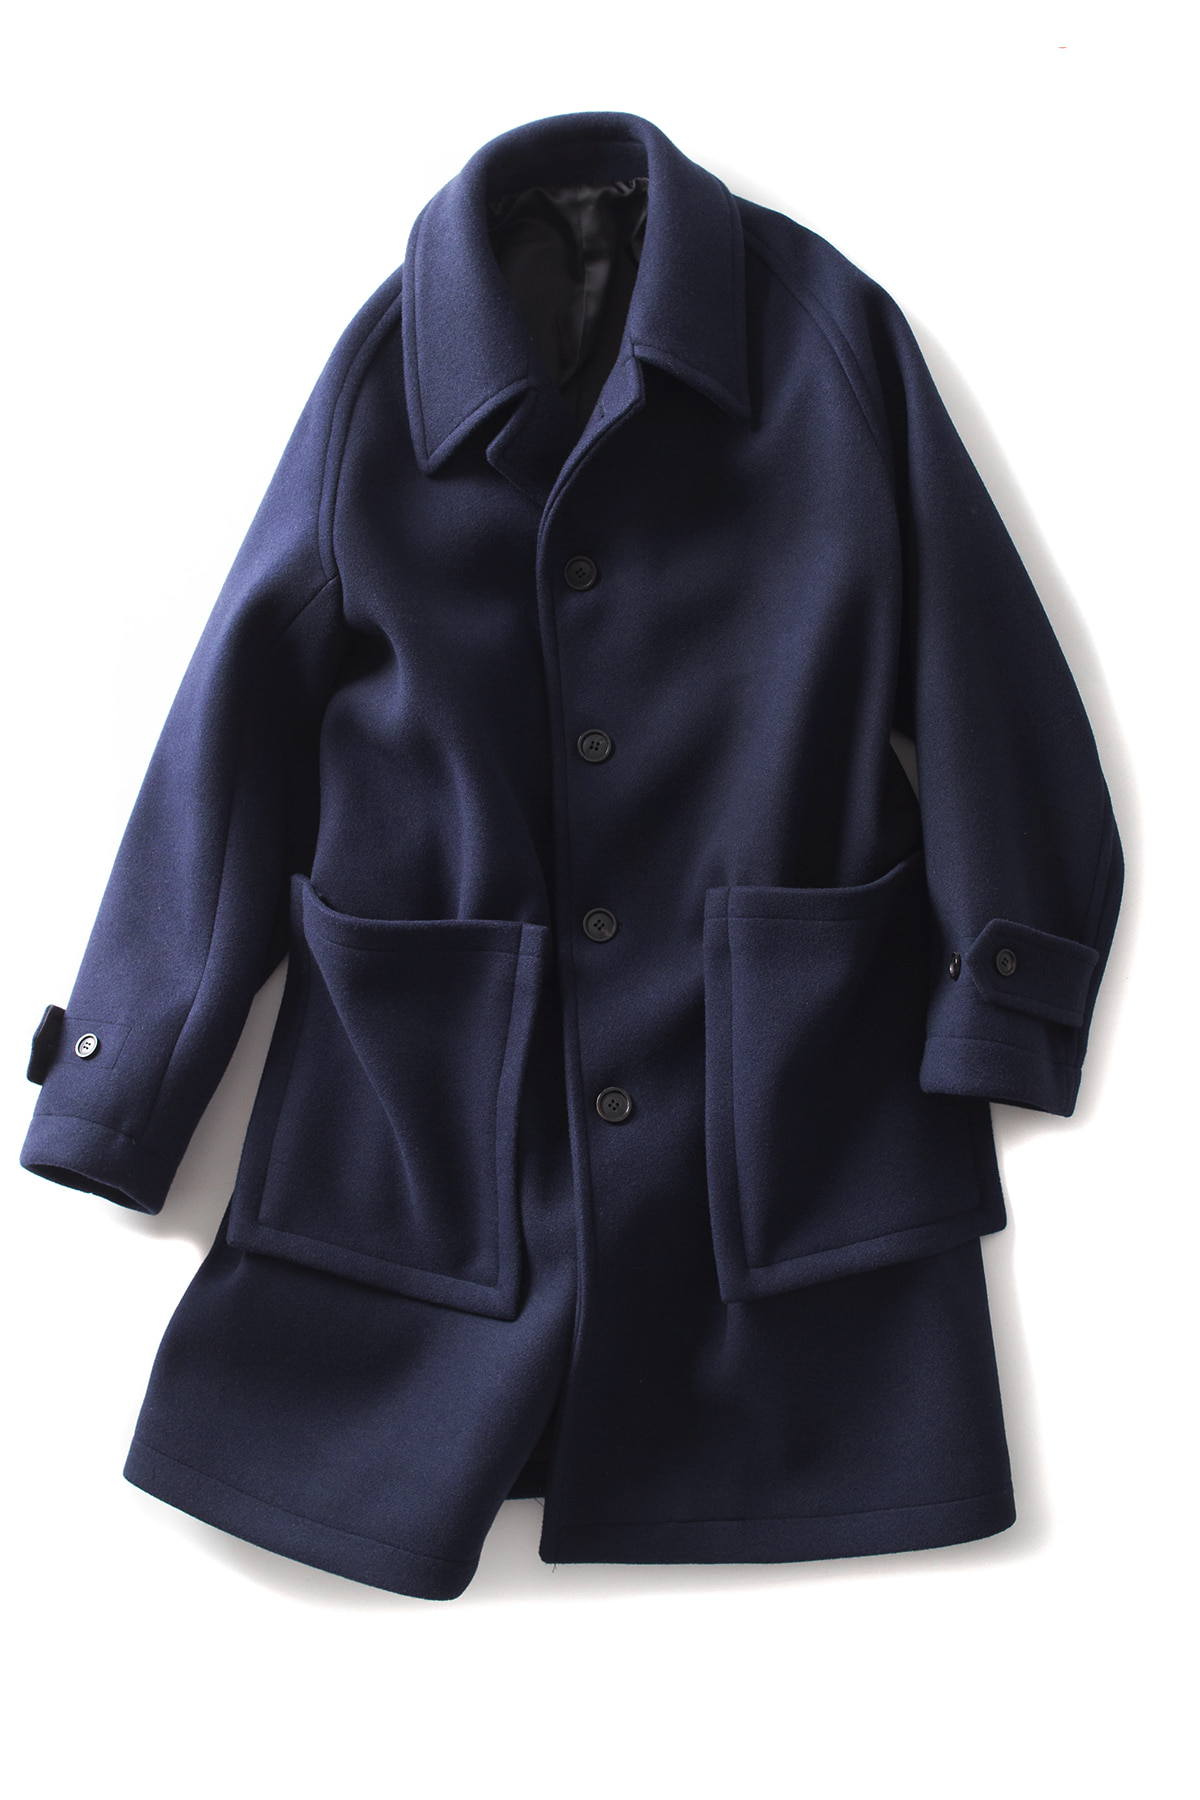 BIRTHDAYSUIT : Leck Coat (Navy)